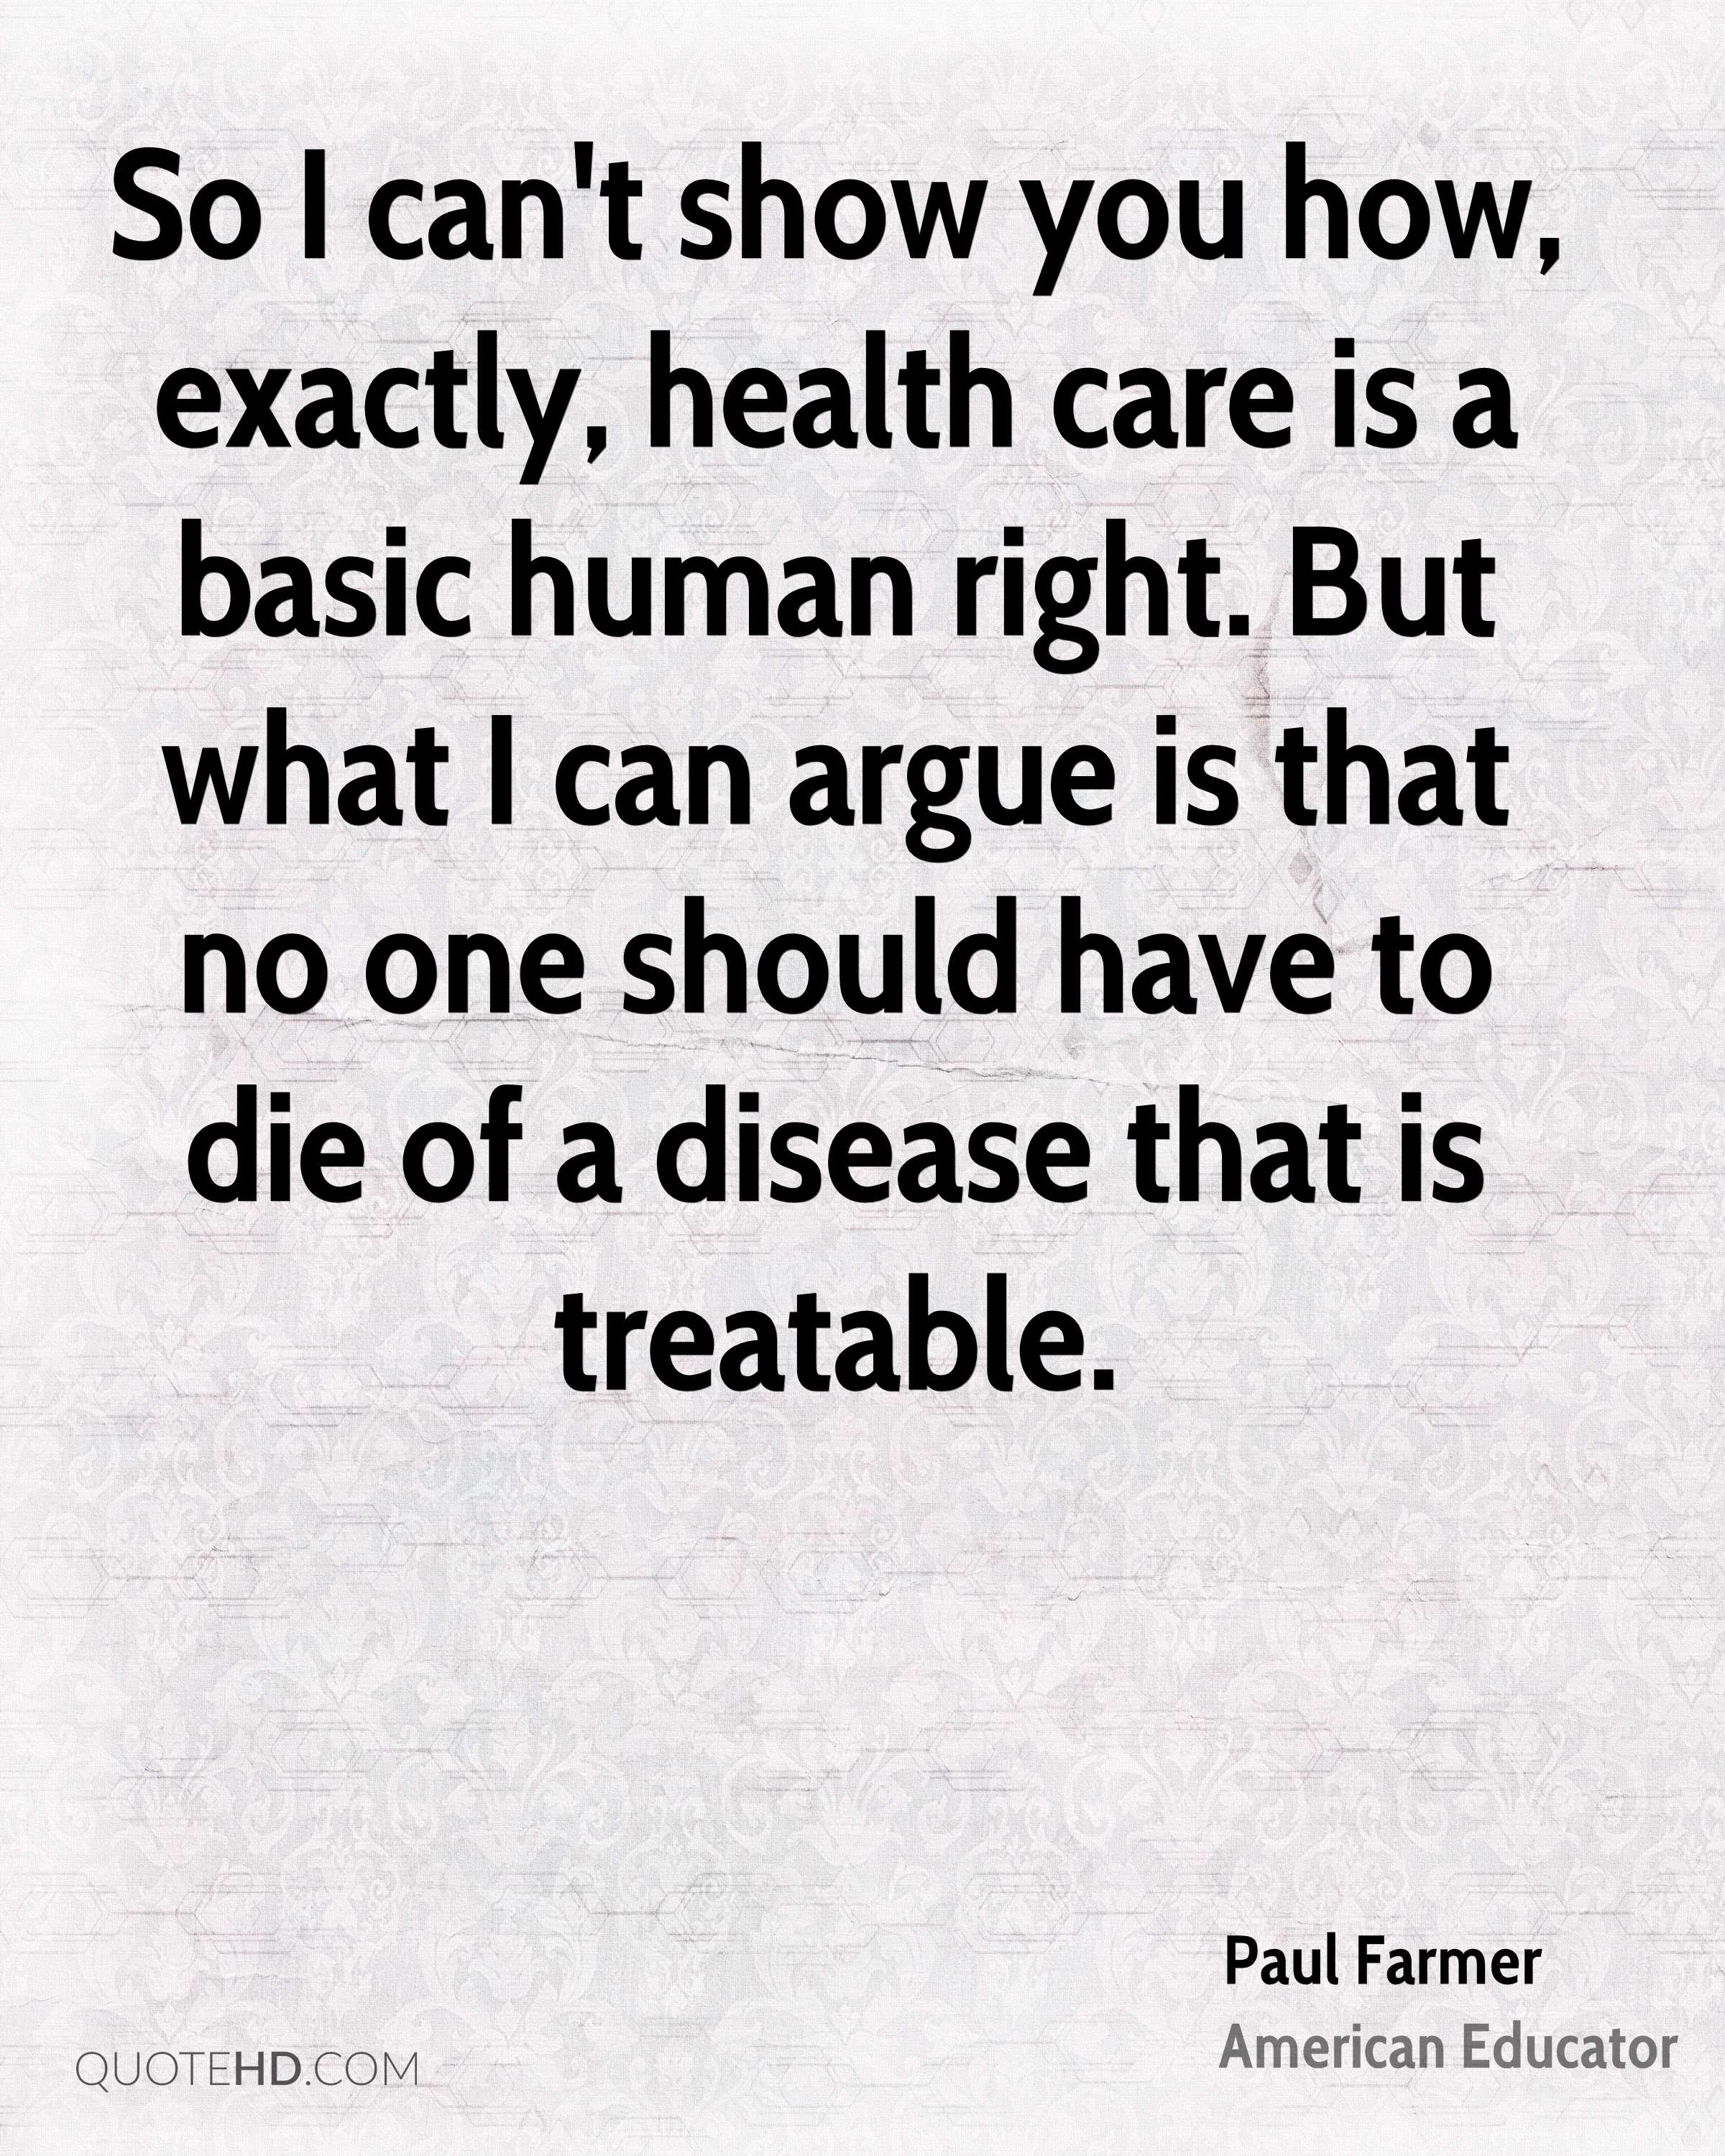 So I can't show you how, exactly, health care is a basic human right. But what I can argue is that no one should have to die of a disease that is treatable.